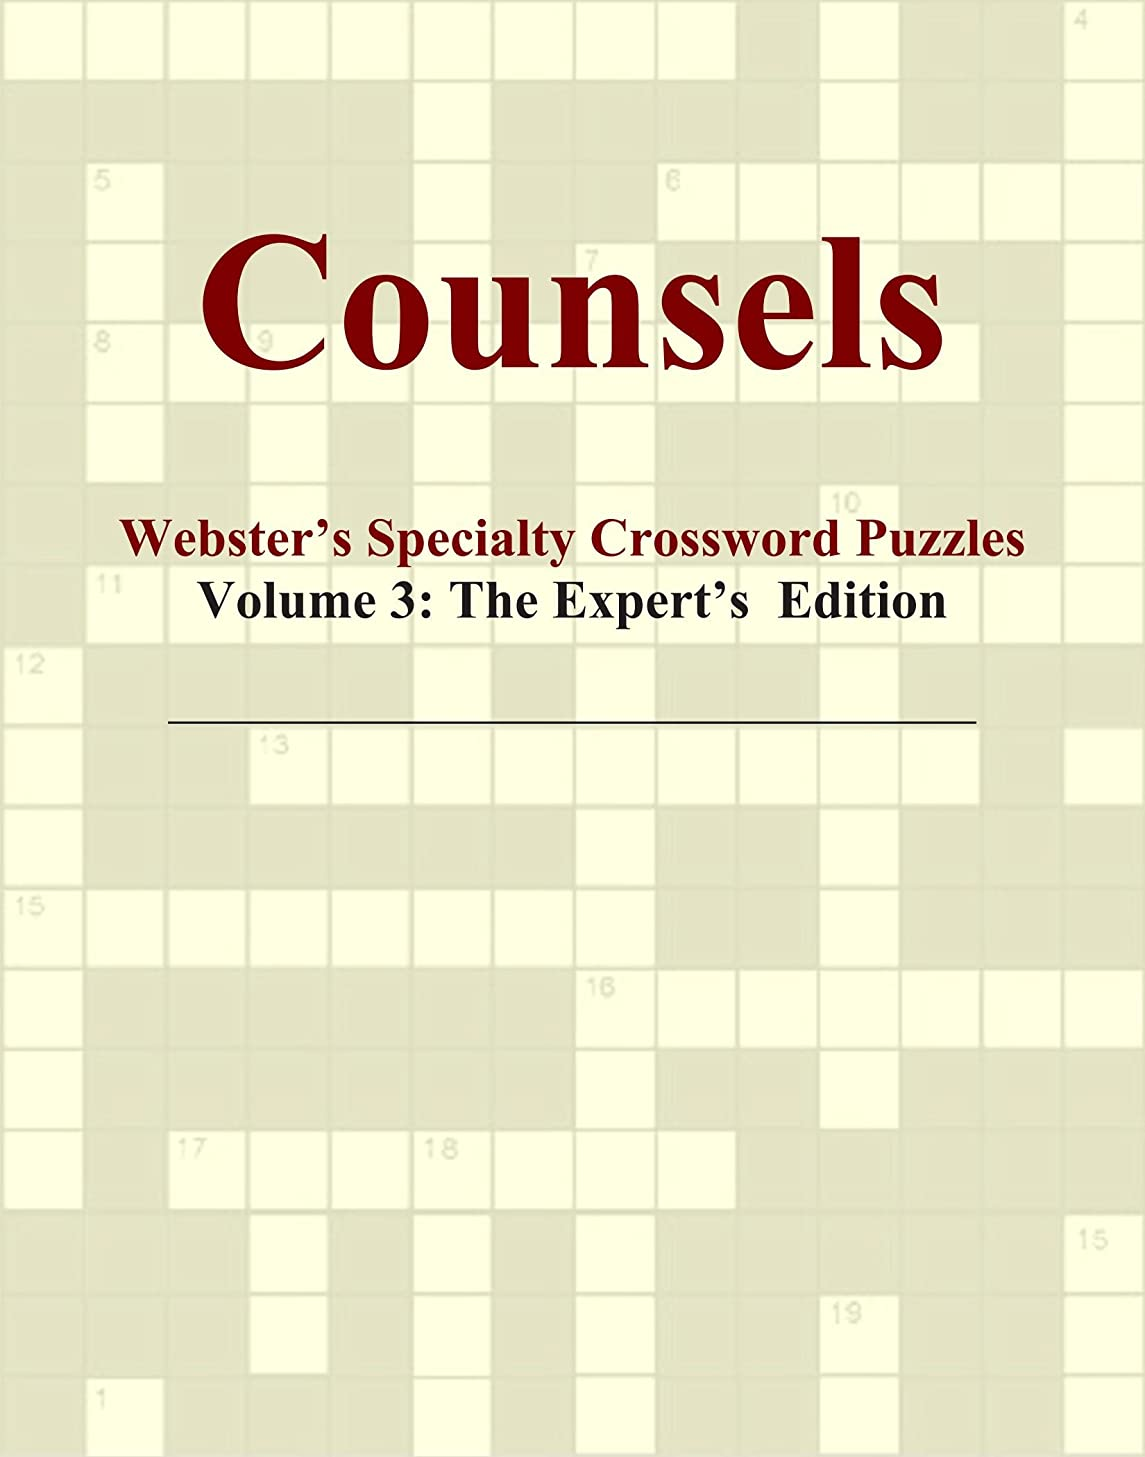 第九取り組む偽善者Counsels - Webster's Specialty Crossword Puzzles, Volume 3: The Expert's Edition